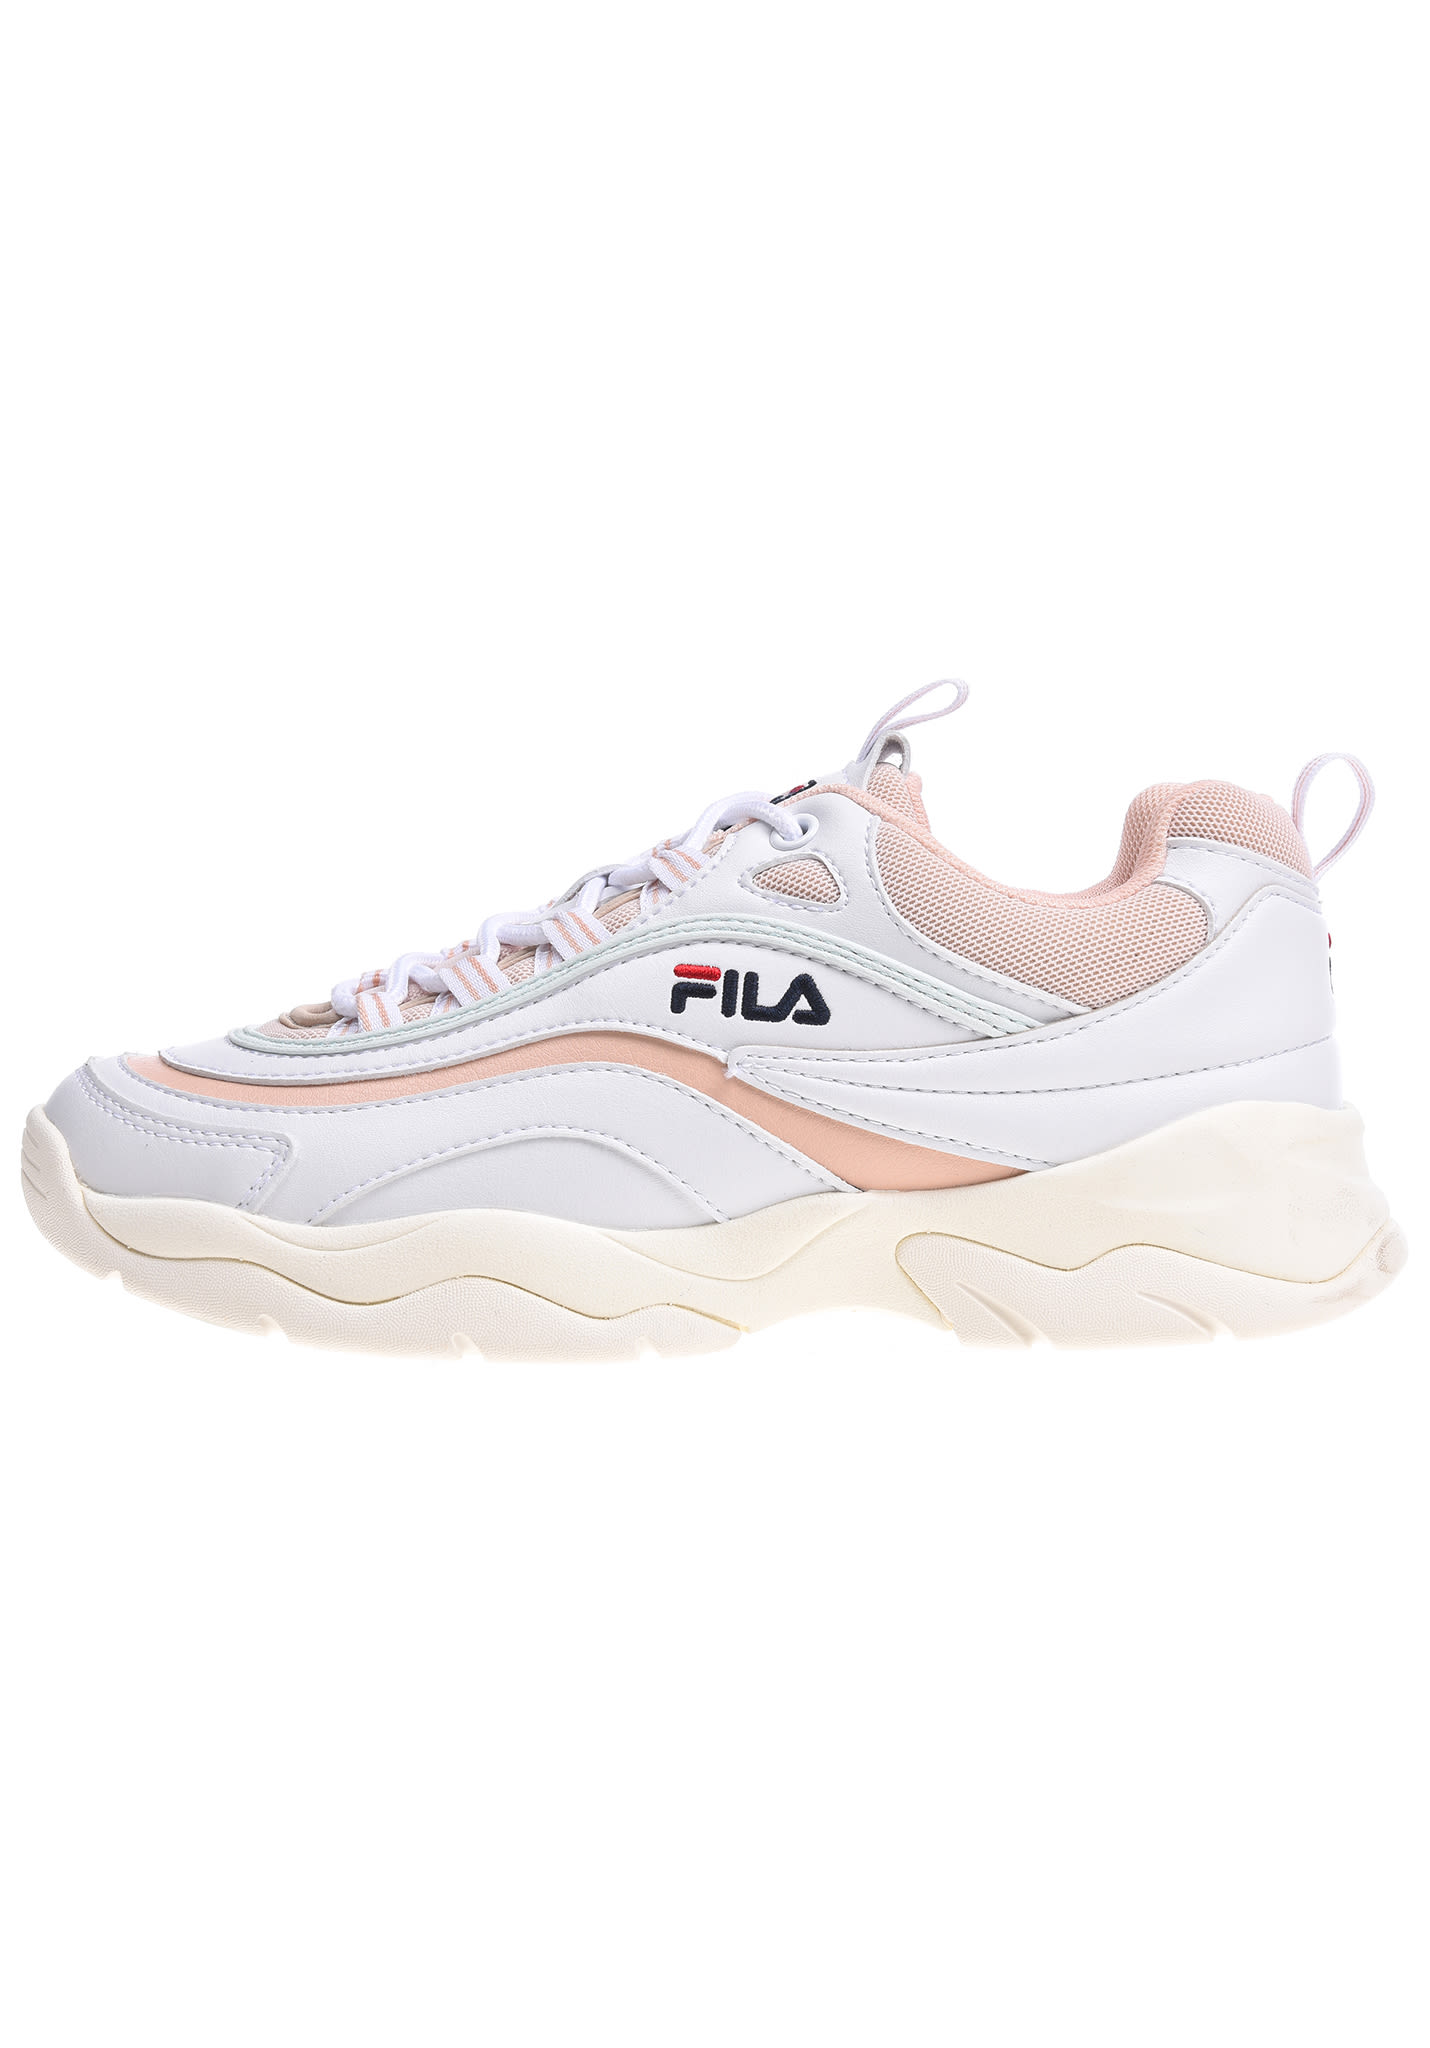 Fila Heritage Ray Low - Sneakers for Women - Pink